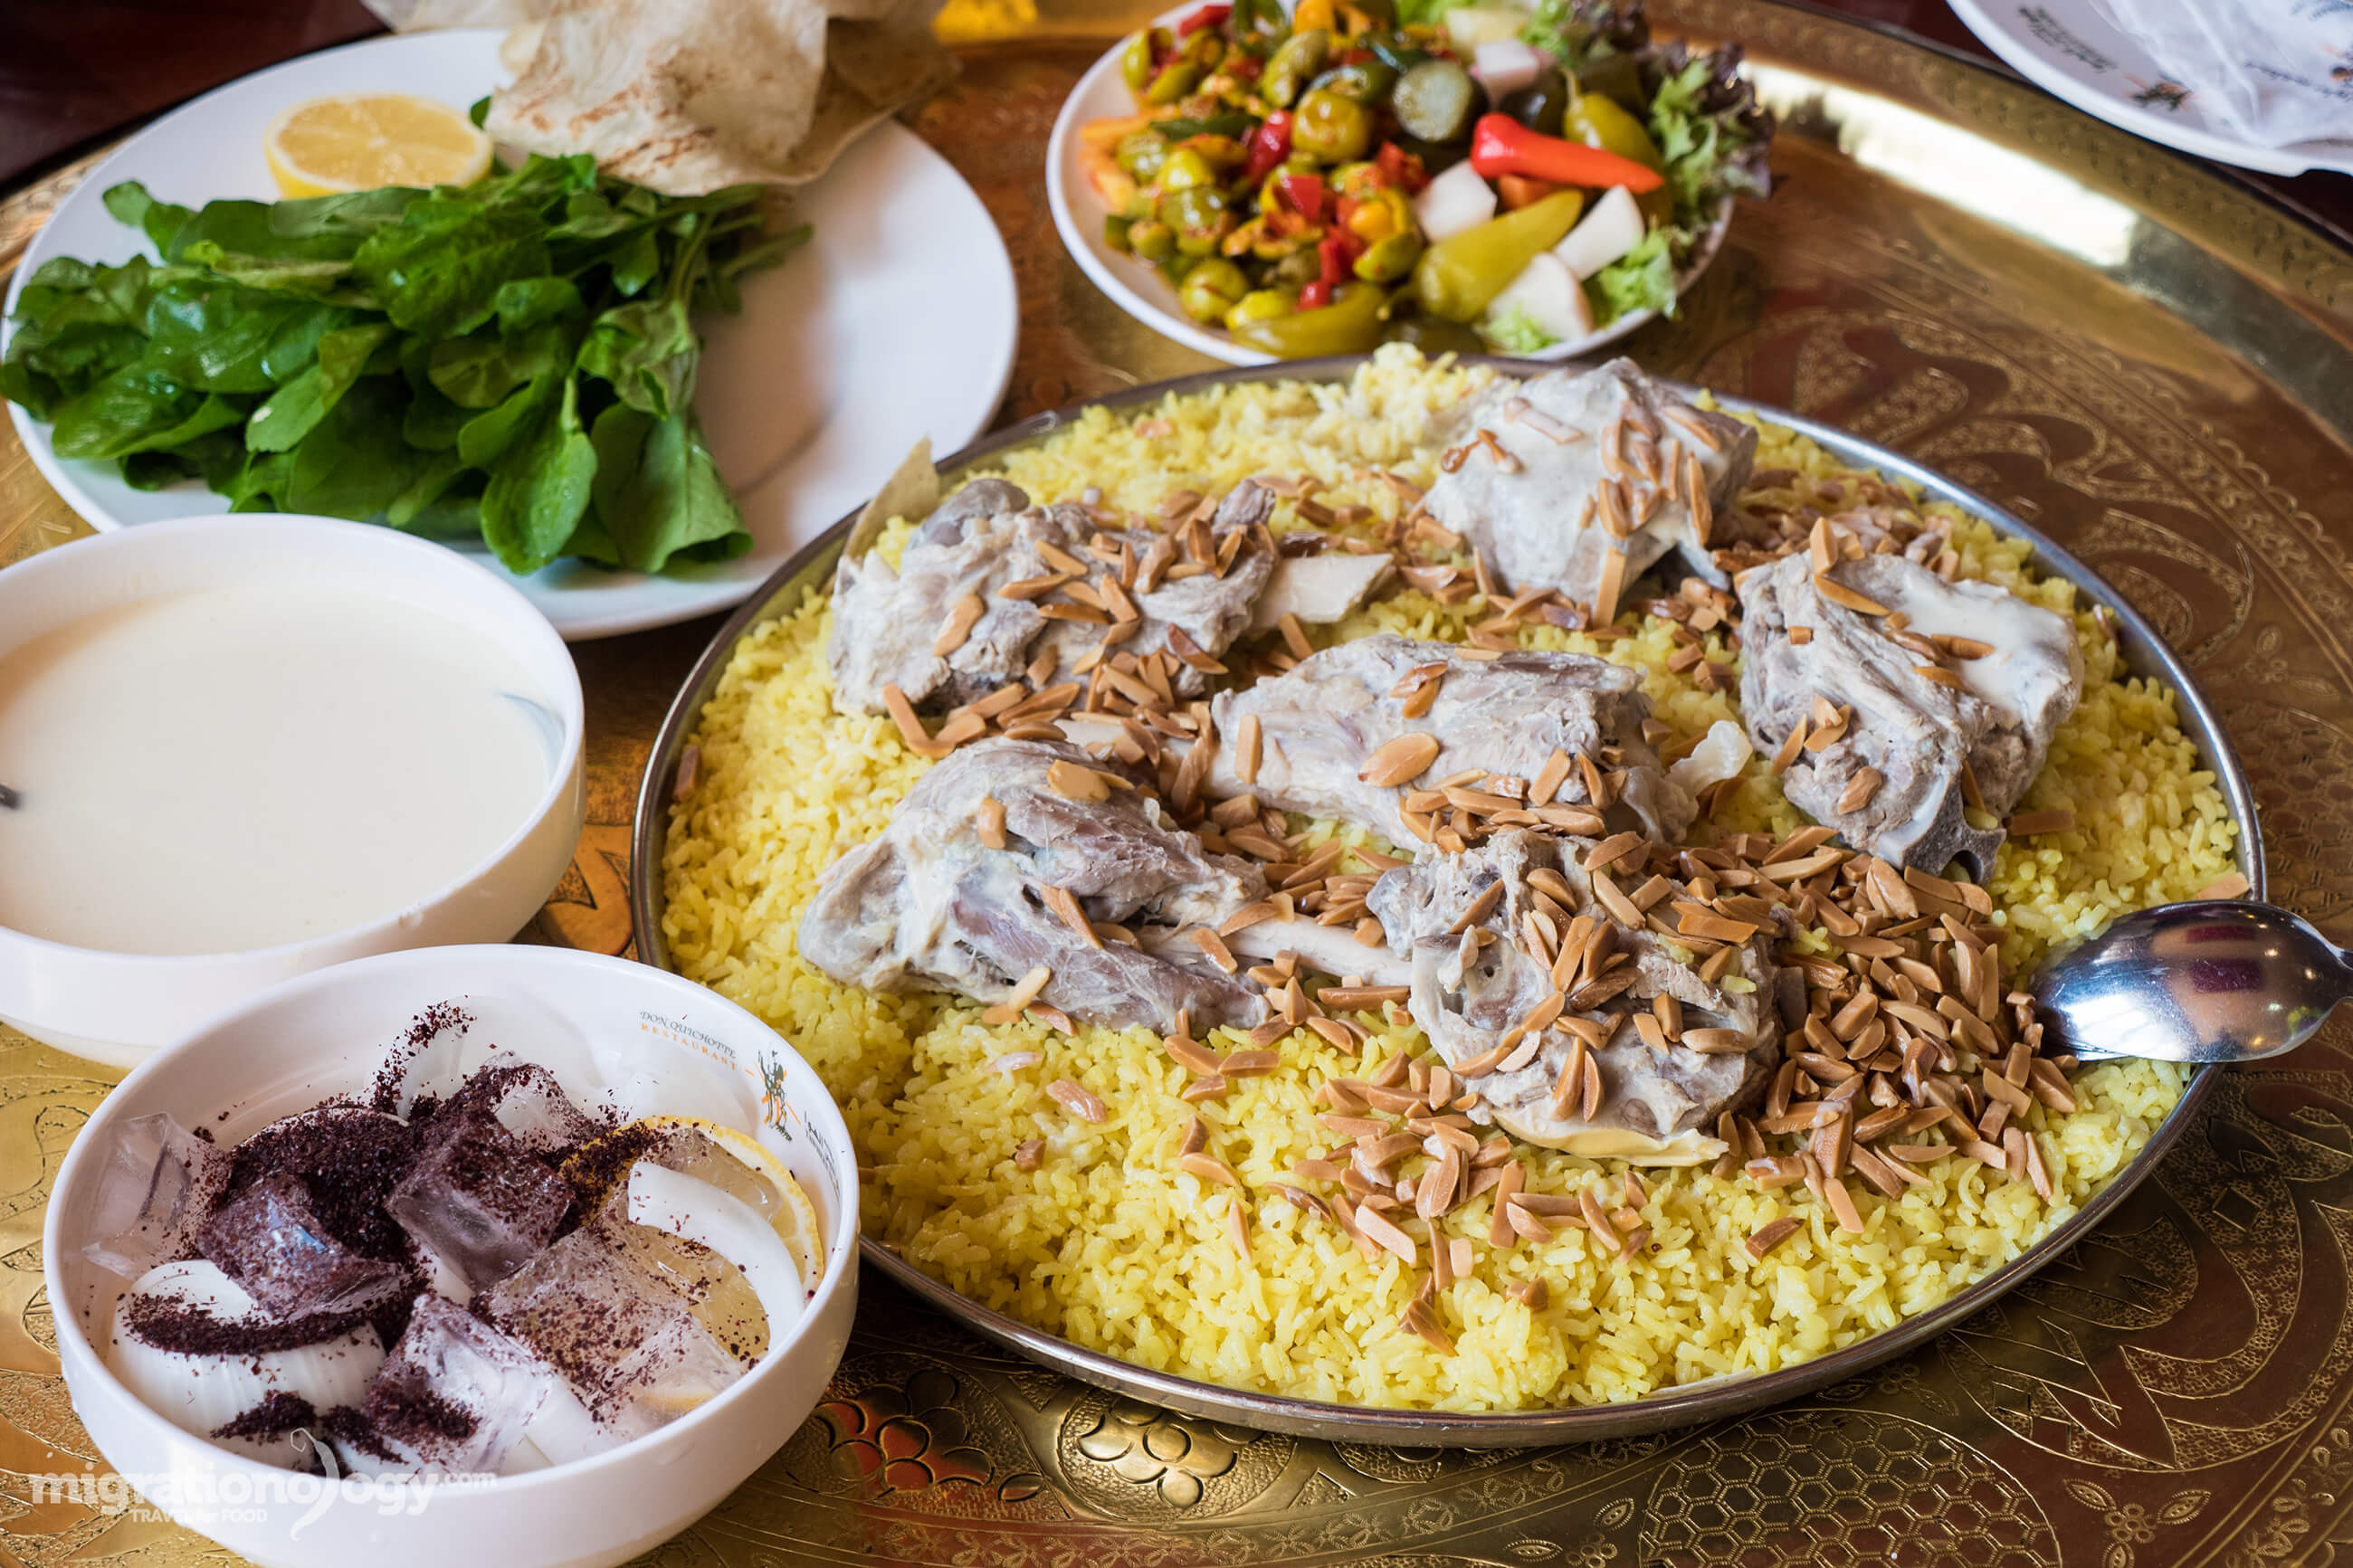 colchón caos Joseph Banks  Mansaf - The One Dish You Have To Eat in Jordan